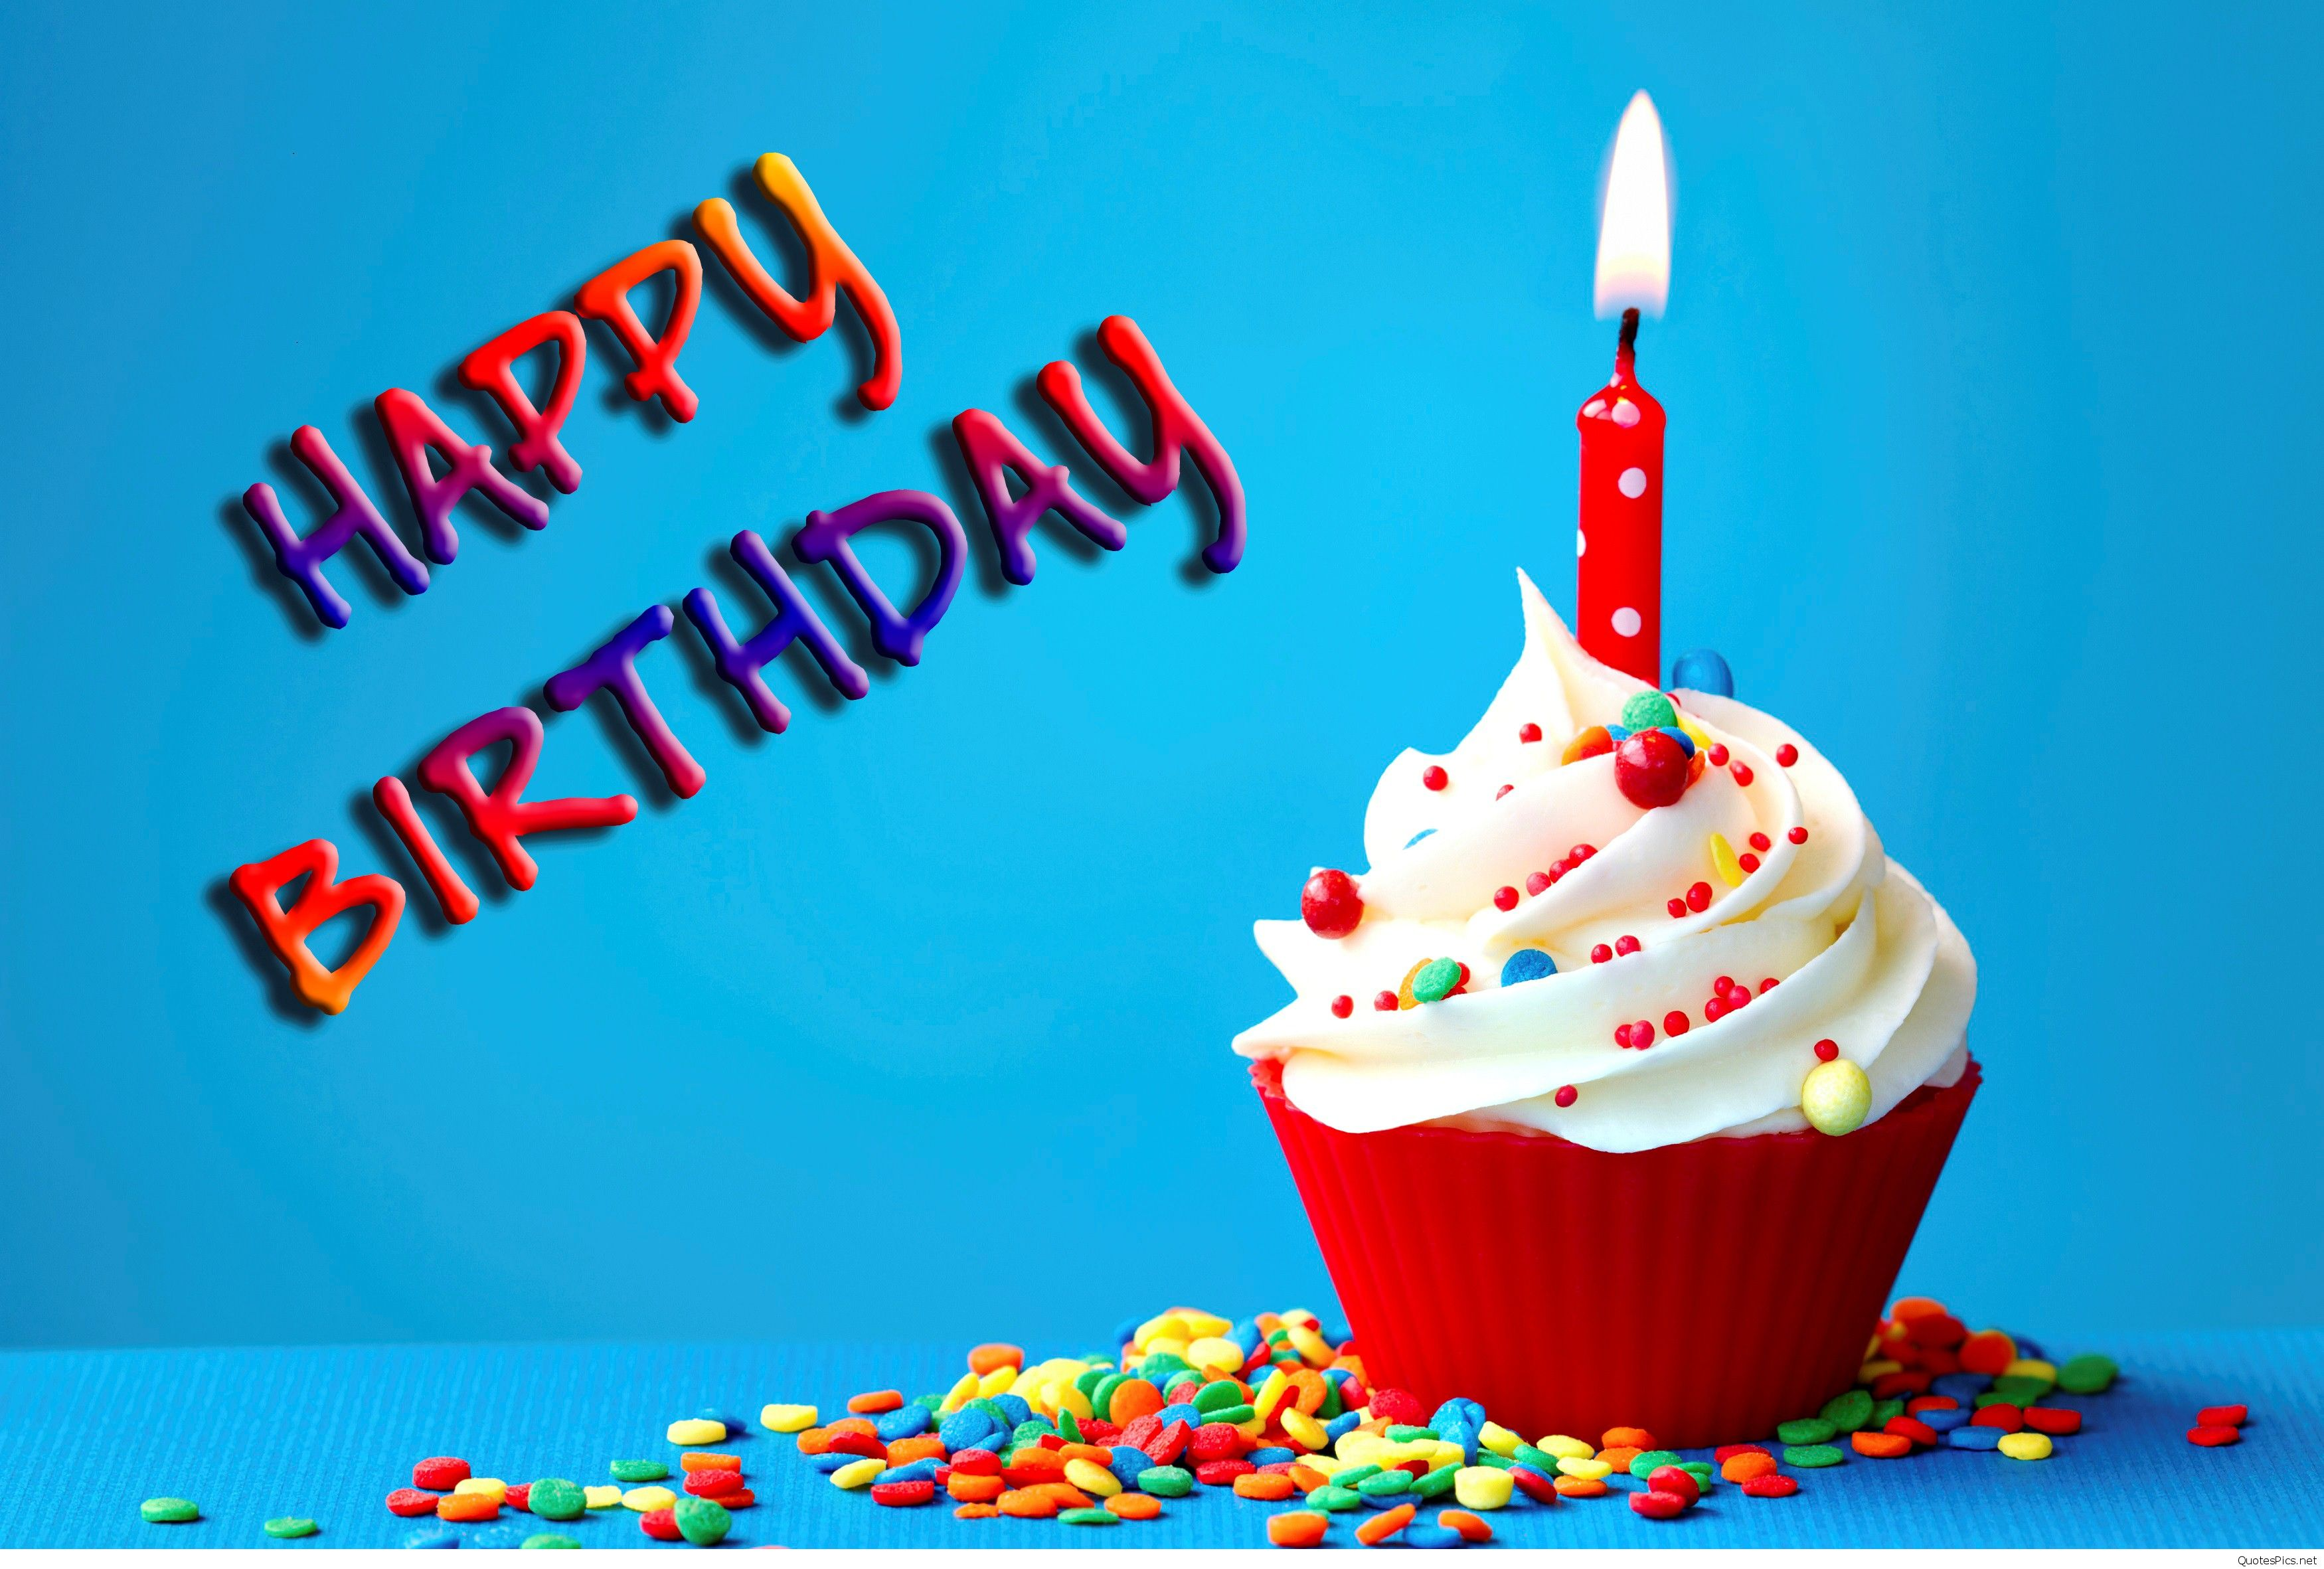 birthday hd ; Amazing_Birthday_Wish_with_Cake_and_Candle_Wallpaper